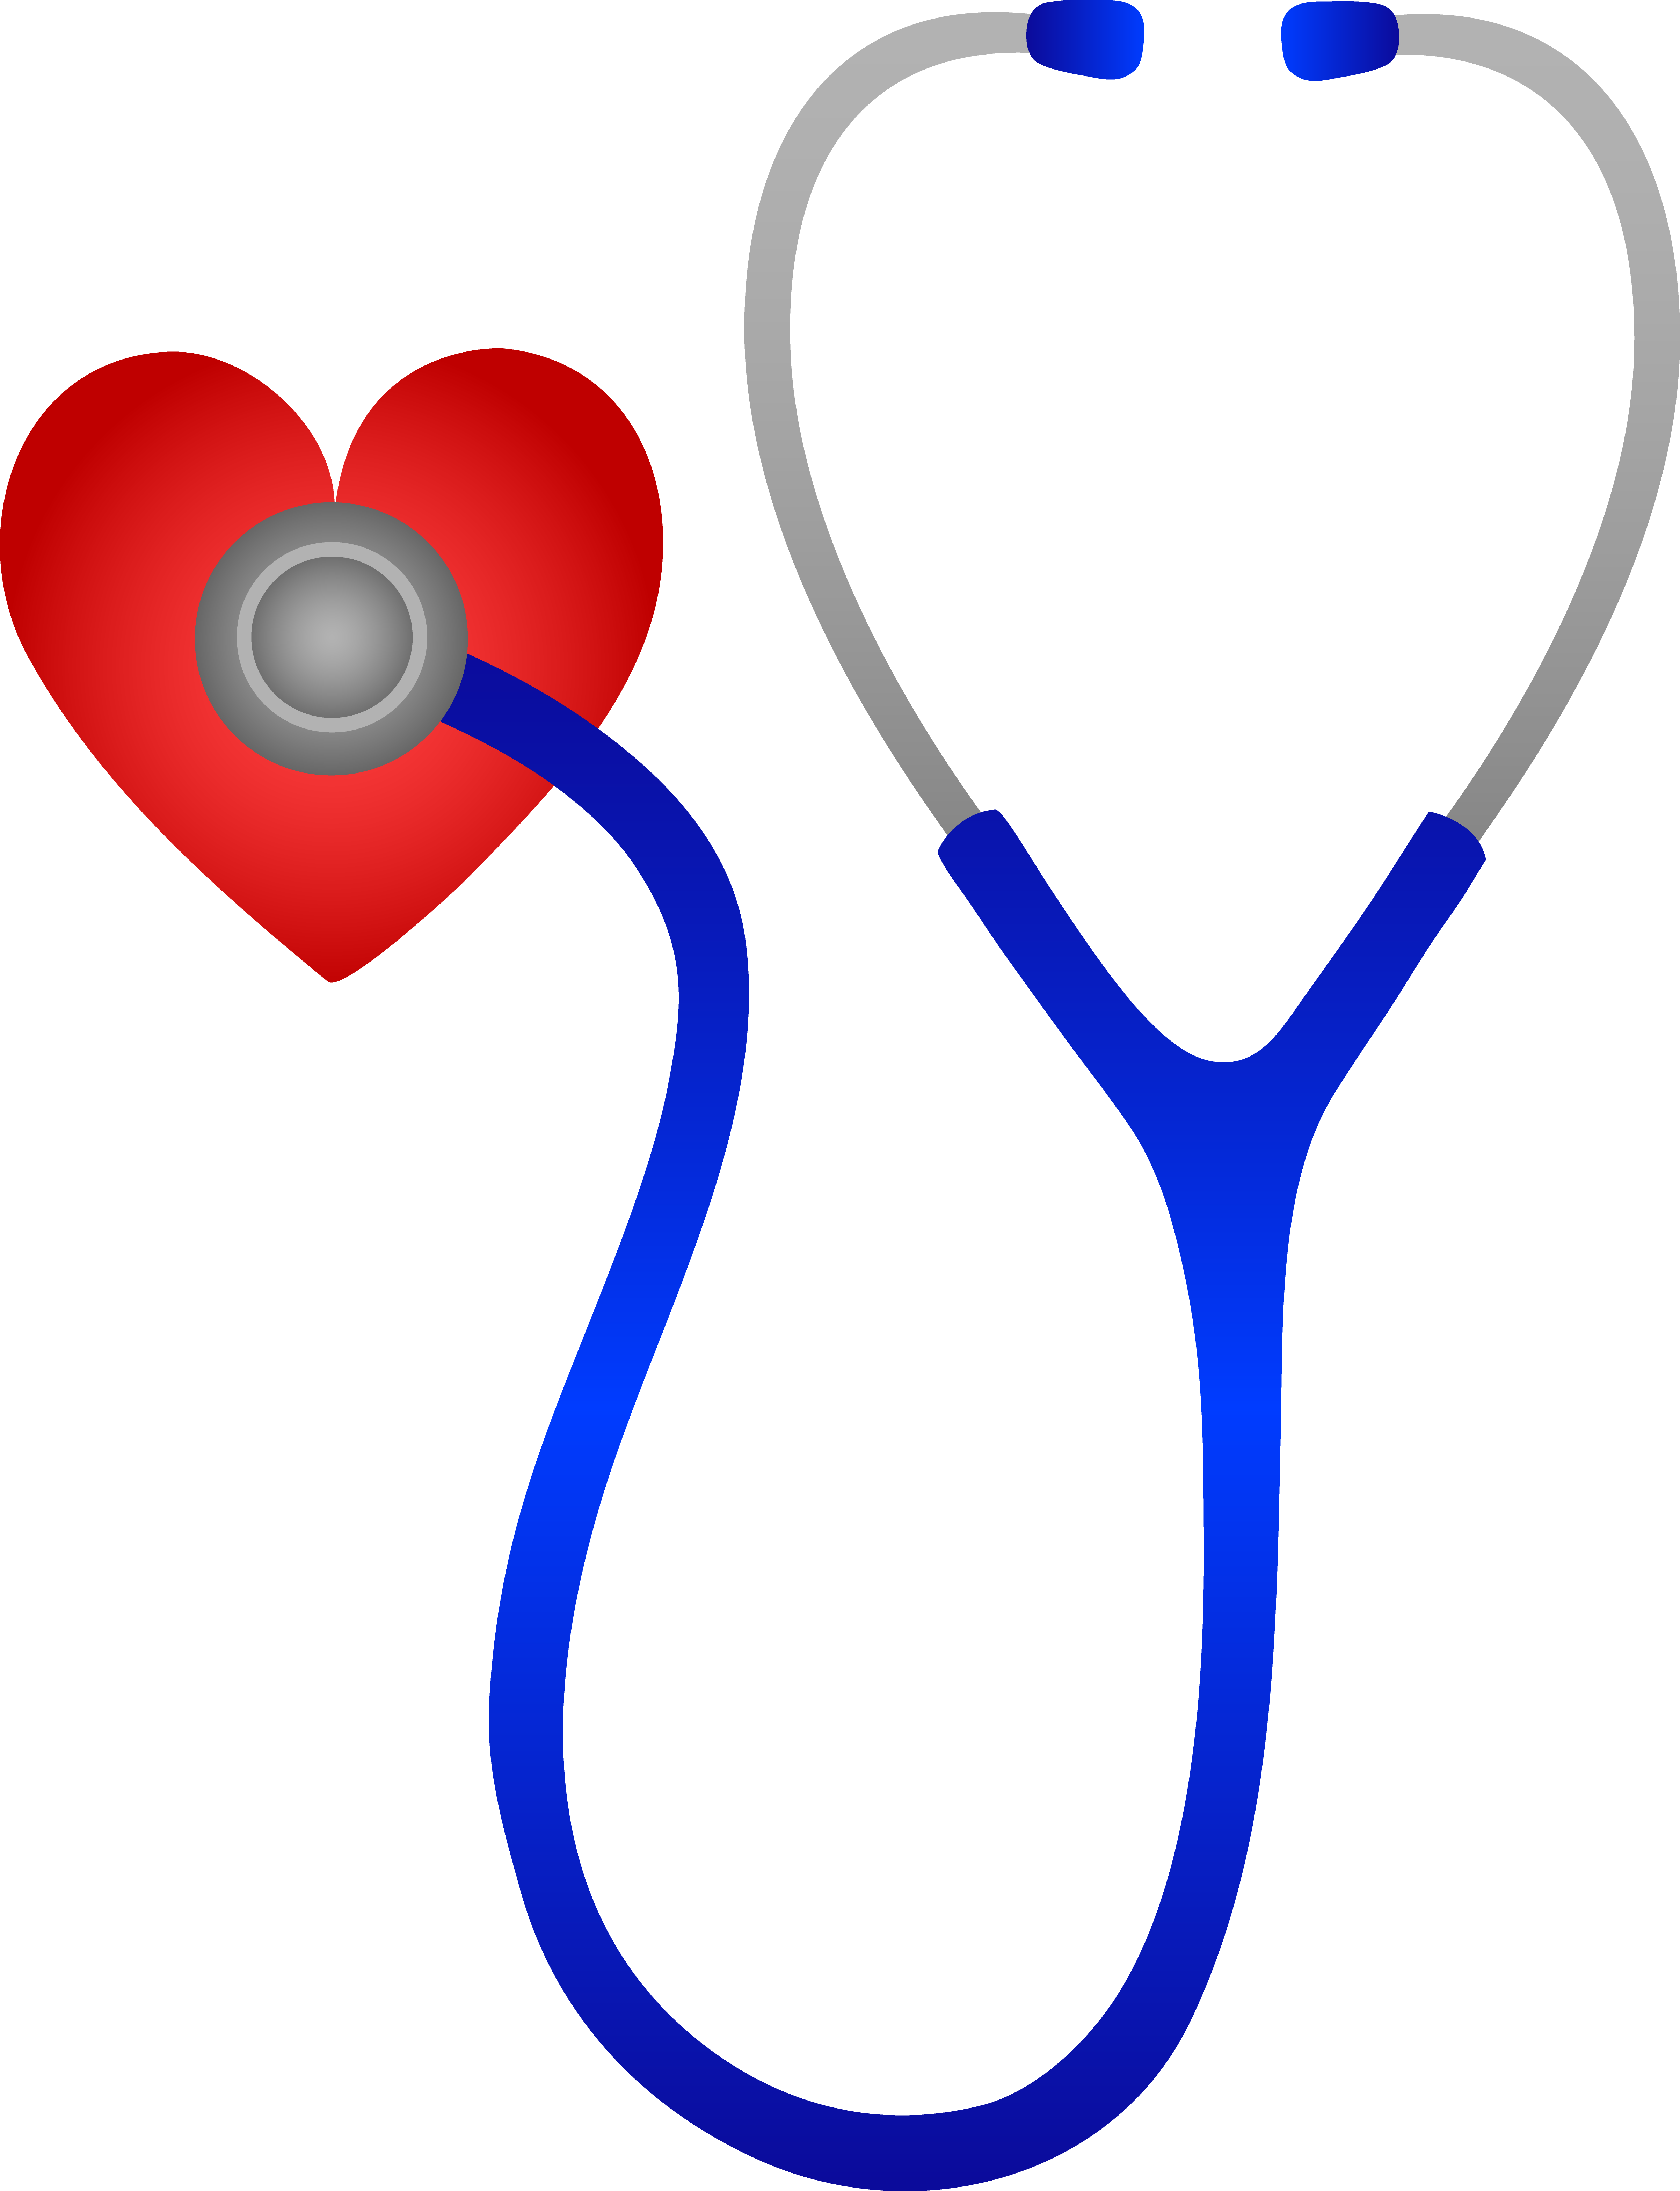 Stethoscope cartoon png. Blue and red heart